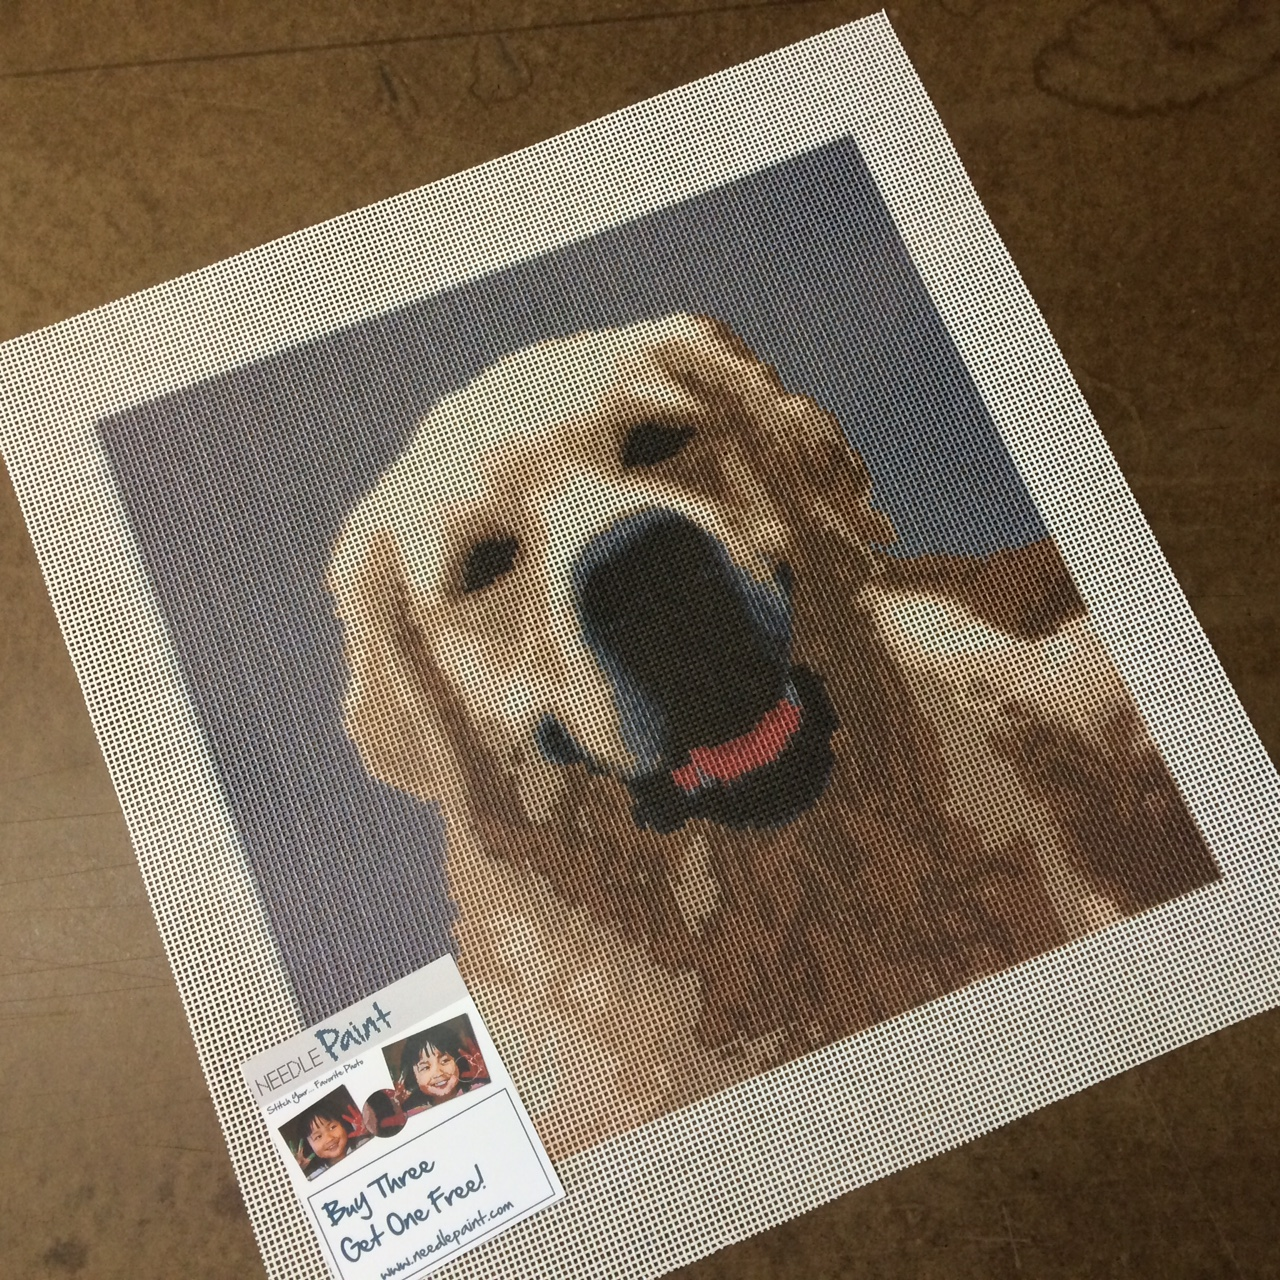 Cute Golden Retriver Custom Needlepoitn Kit